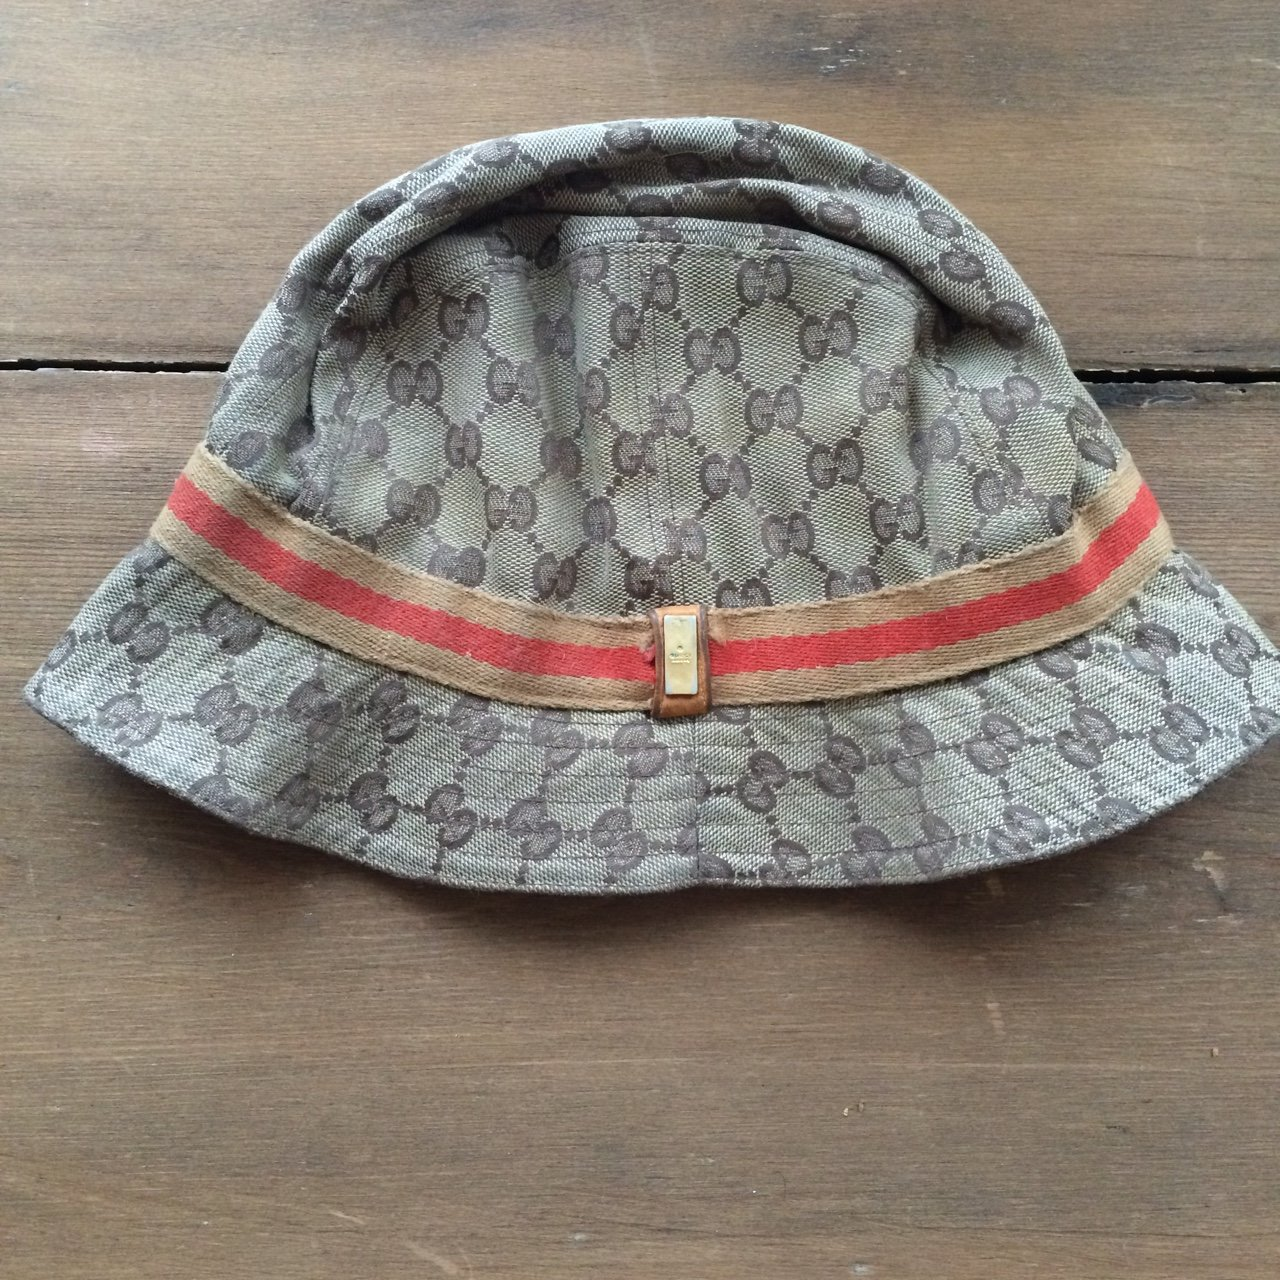 7633d8a276b Gucci bucket  floppy hat. Size Small. 100% real. Authentic - Depop